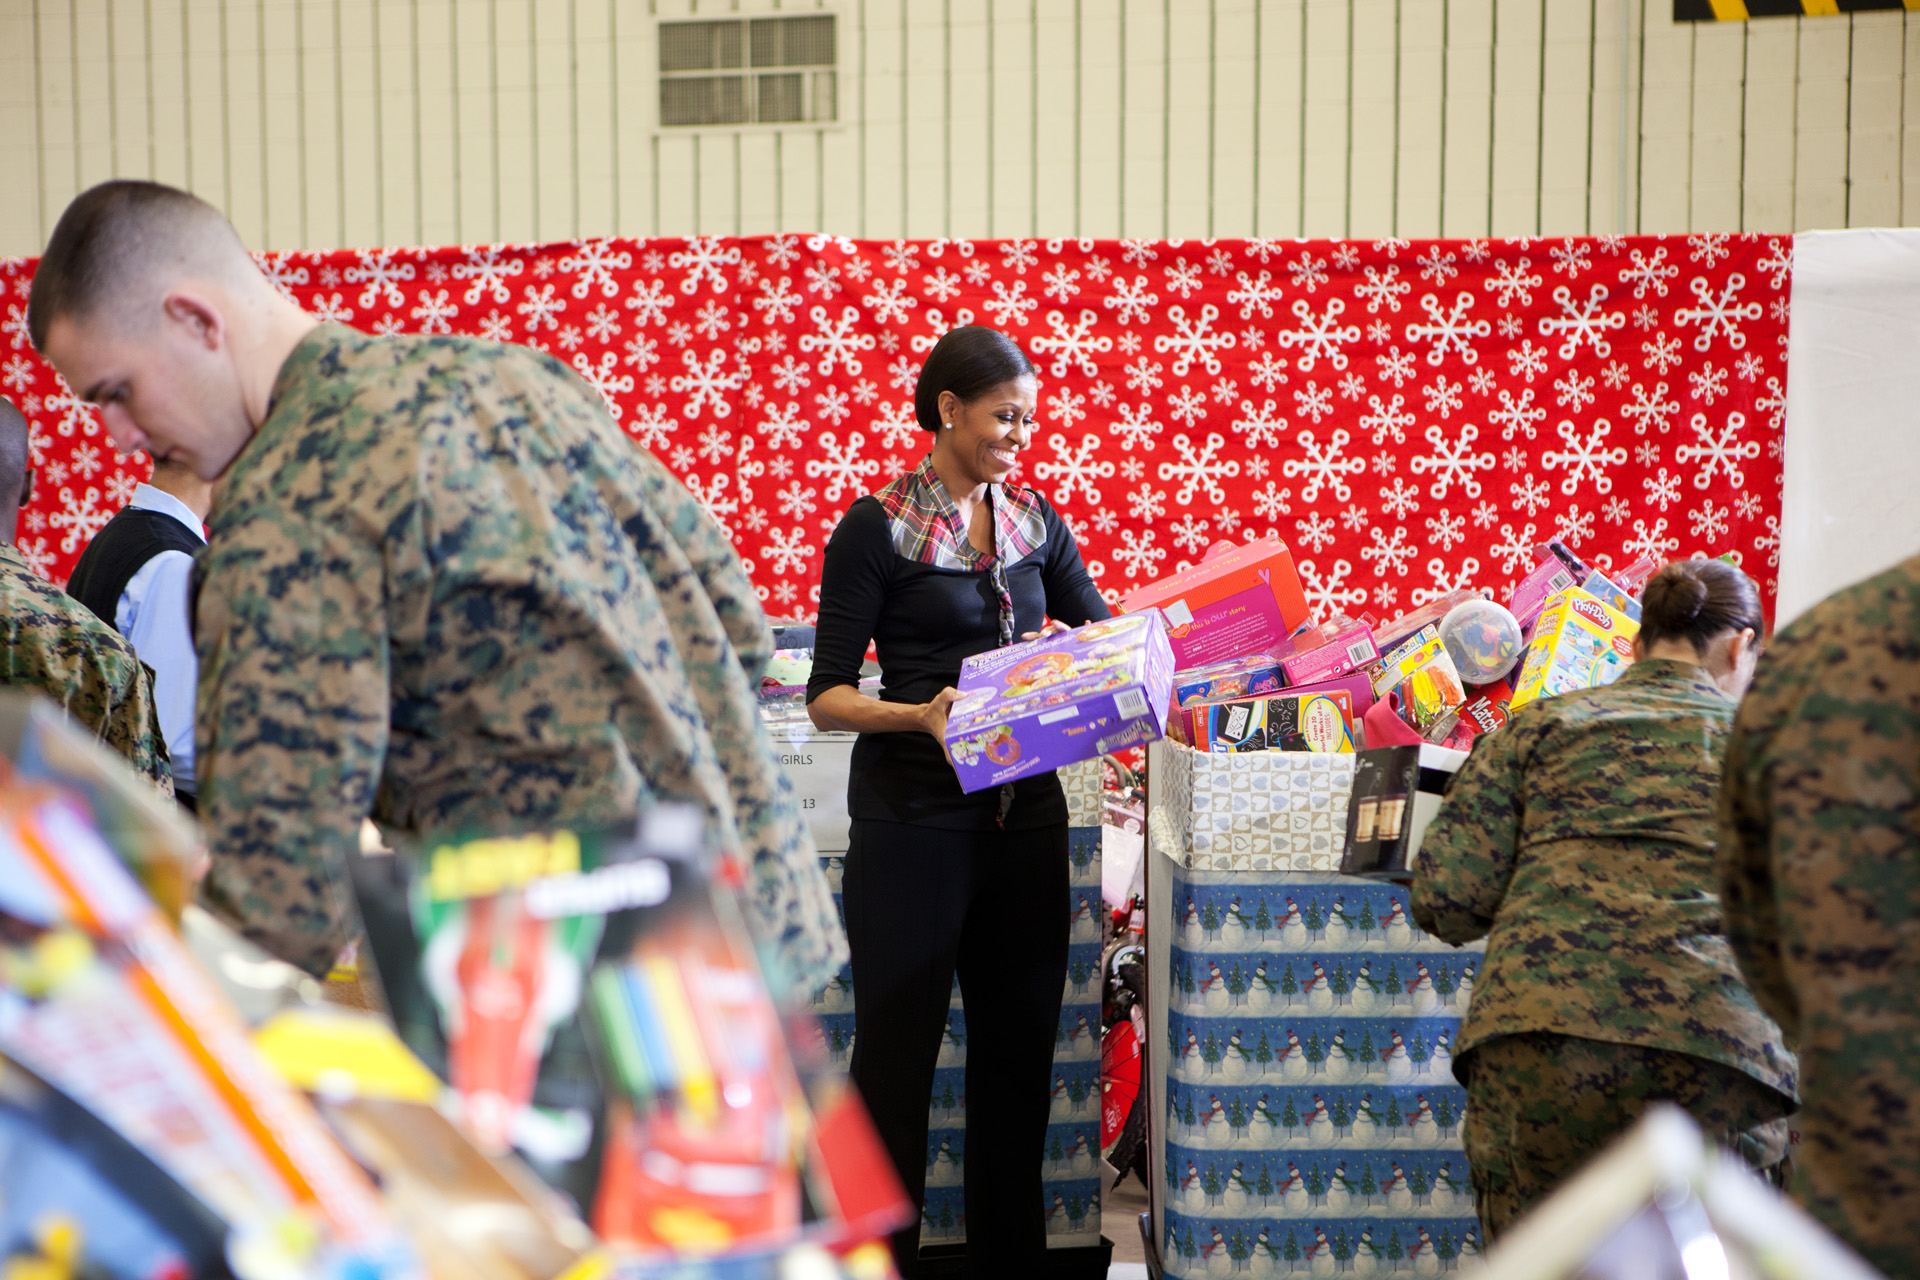 First Lady at Toys for Tots Event